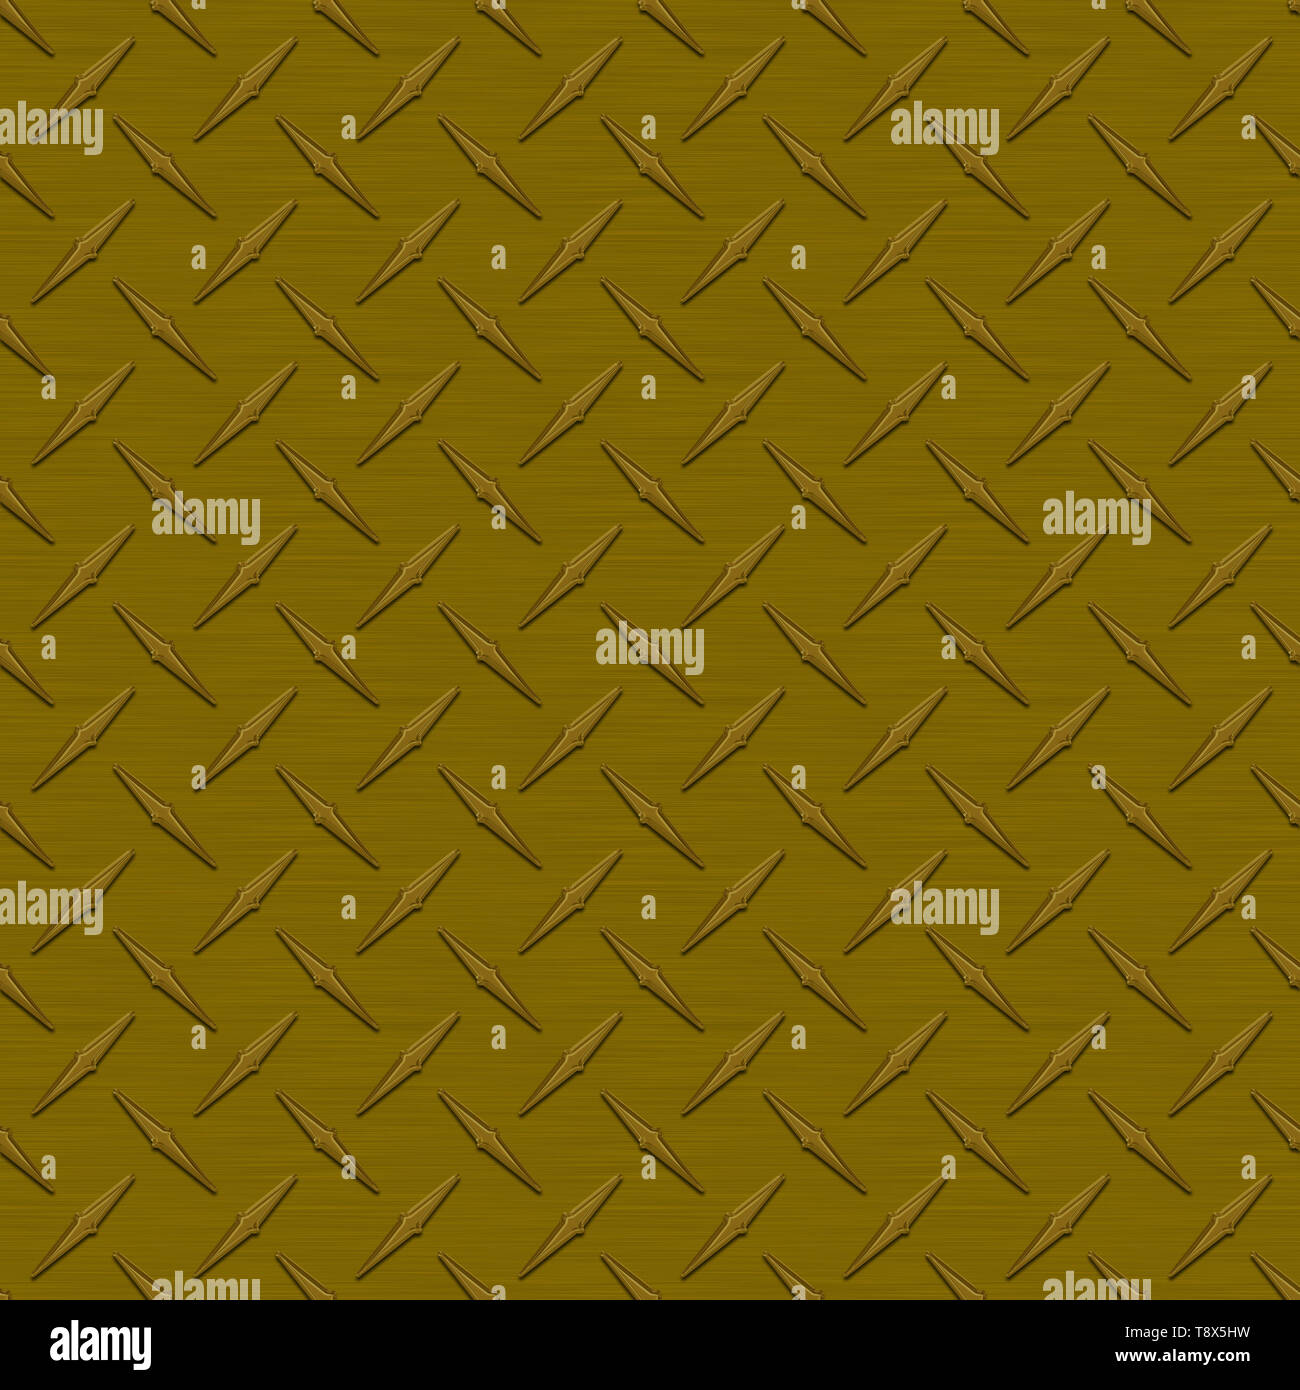 Bronze Diamond Plate Metal Seamless Texture Tile - Stock Image